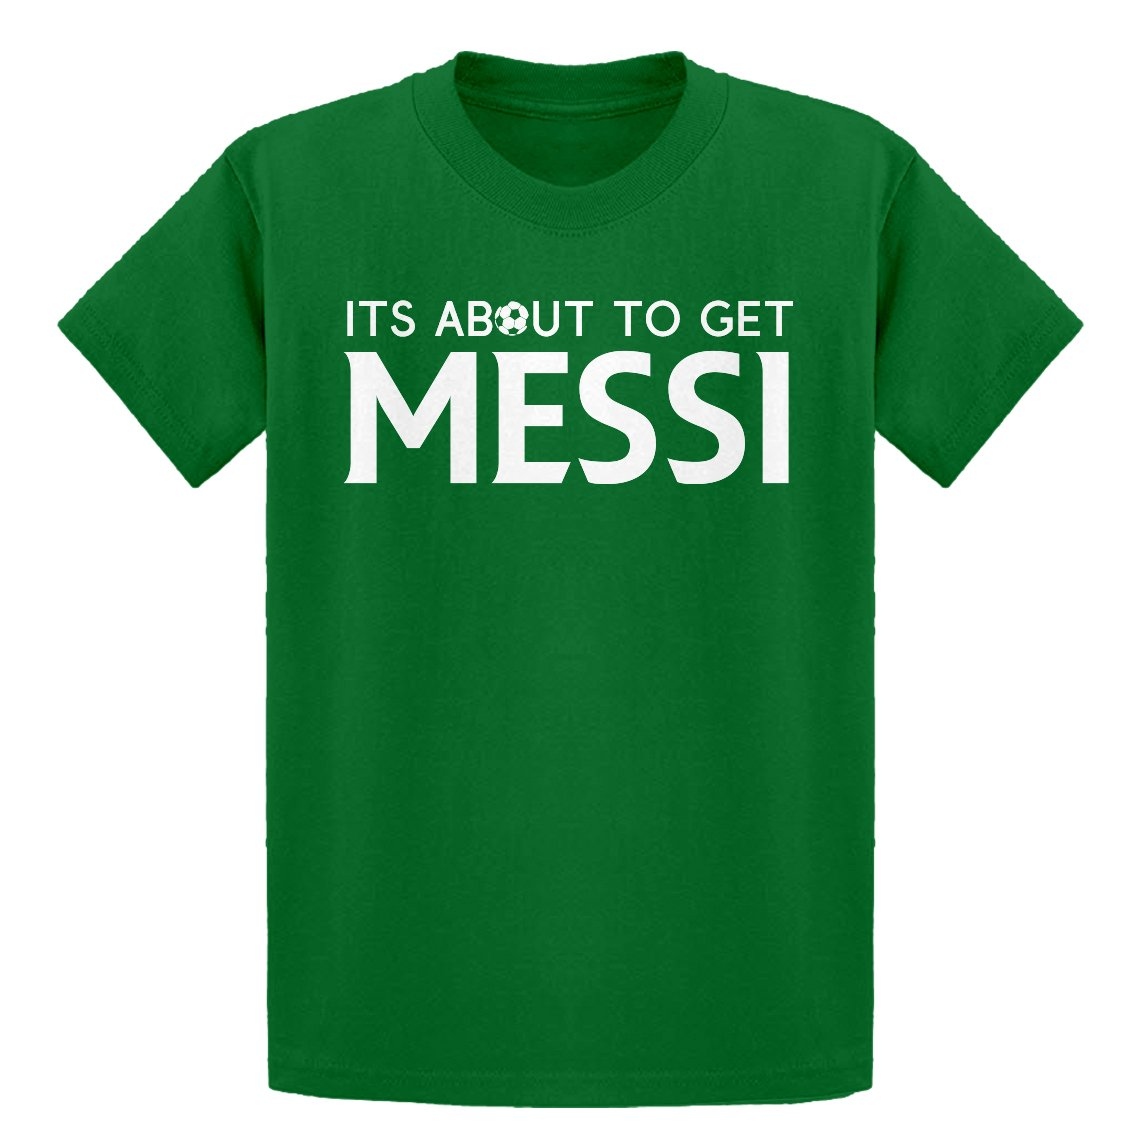 Indica Plateau Youth Its About to Get Messi Kids T-Shirt 4200-Y